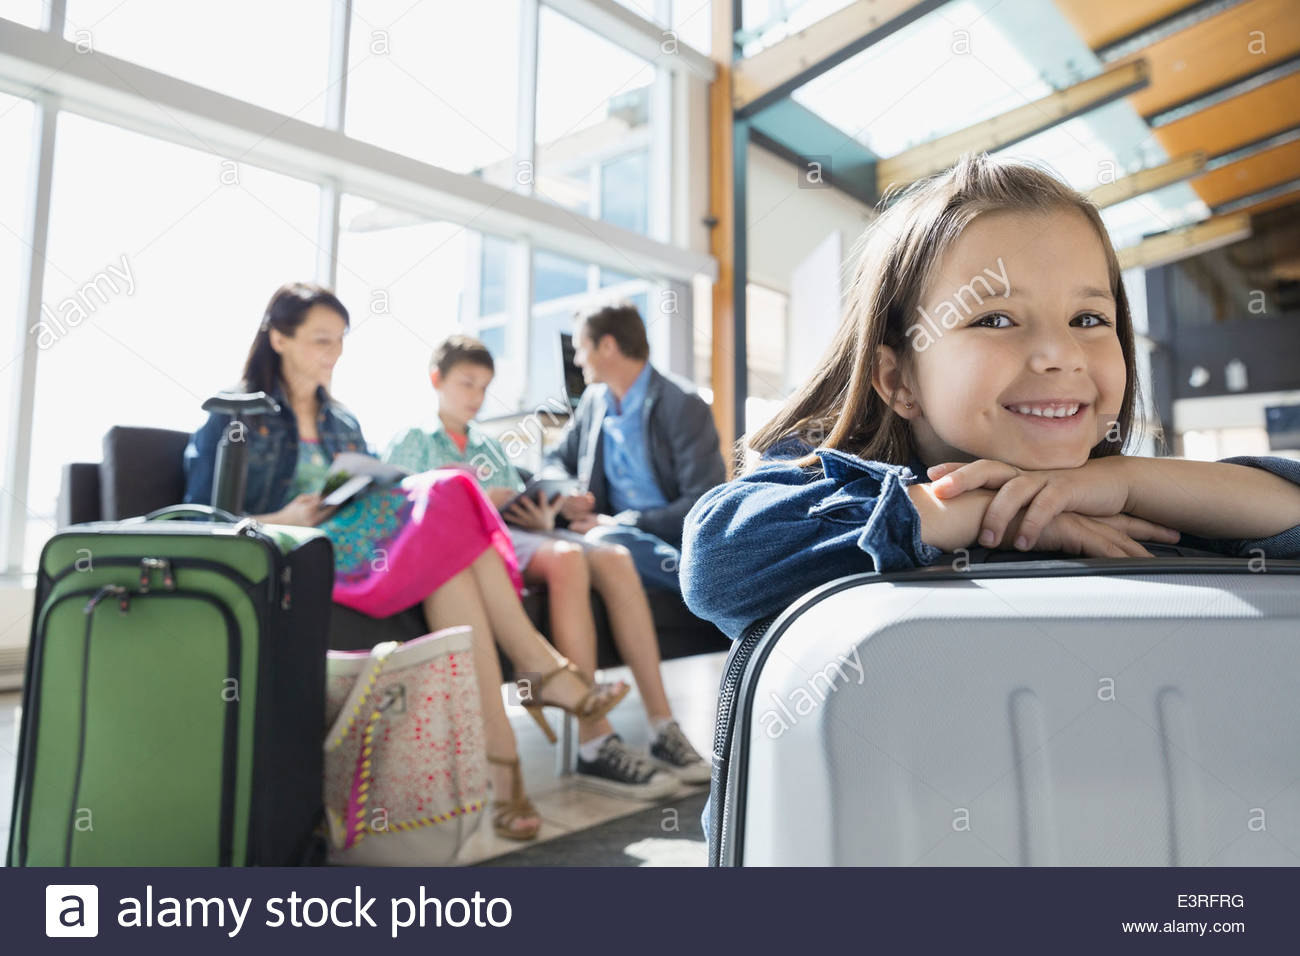 Portrait of smiling girl en attente dans l'aéroport Photo Stock